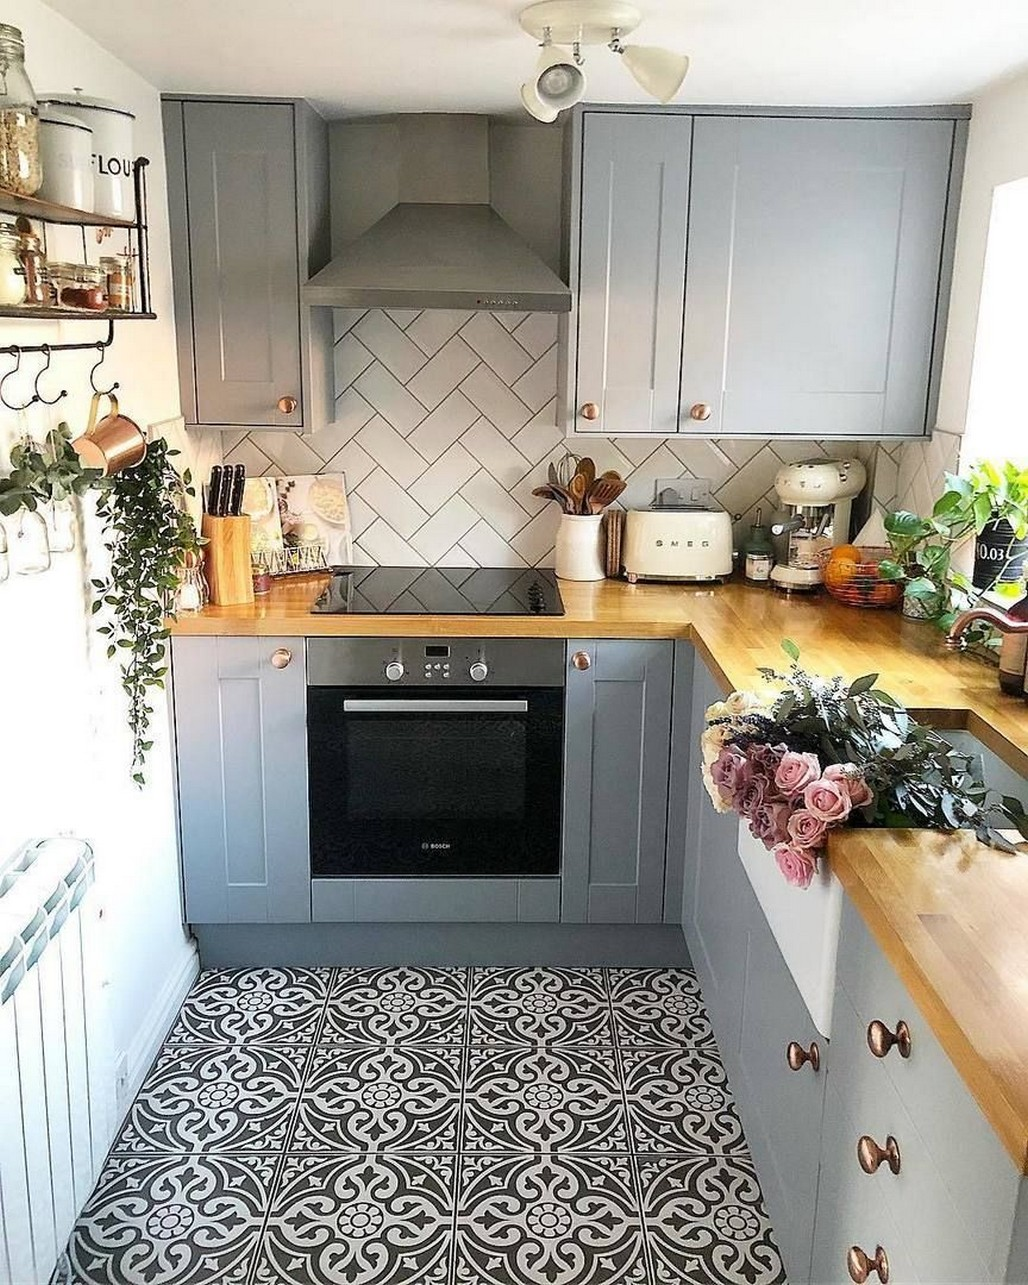 86 Some Small Kitchen Ideas To Help You Do Up Your Kitchen 16